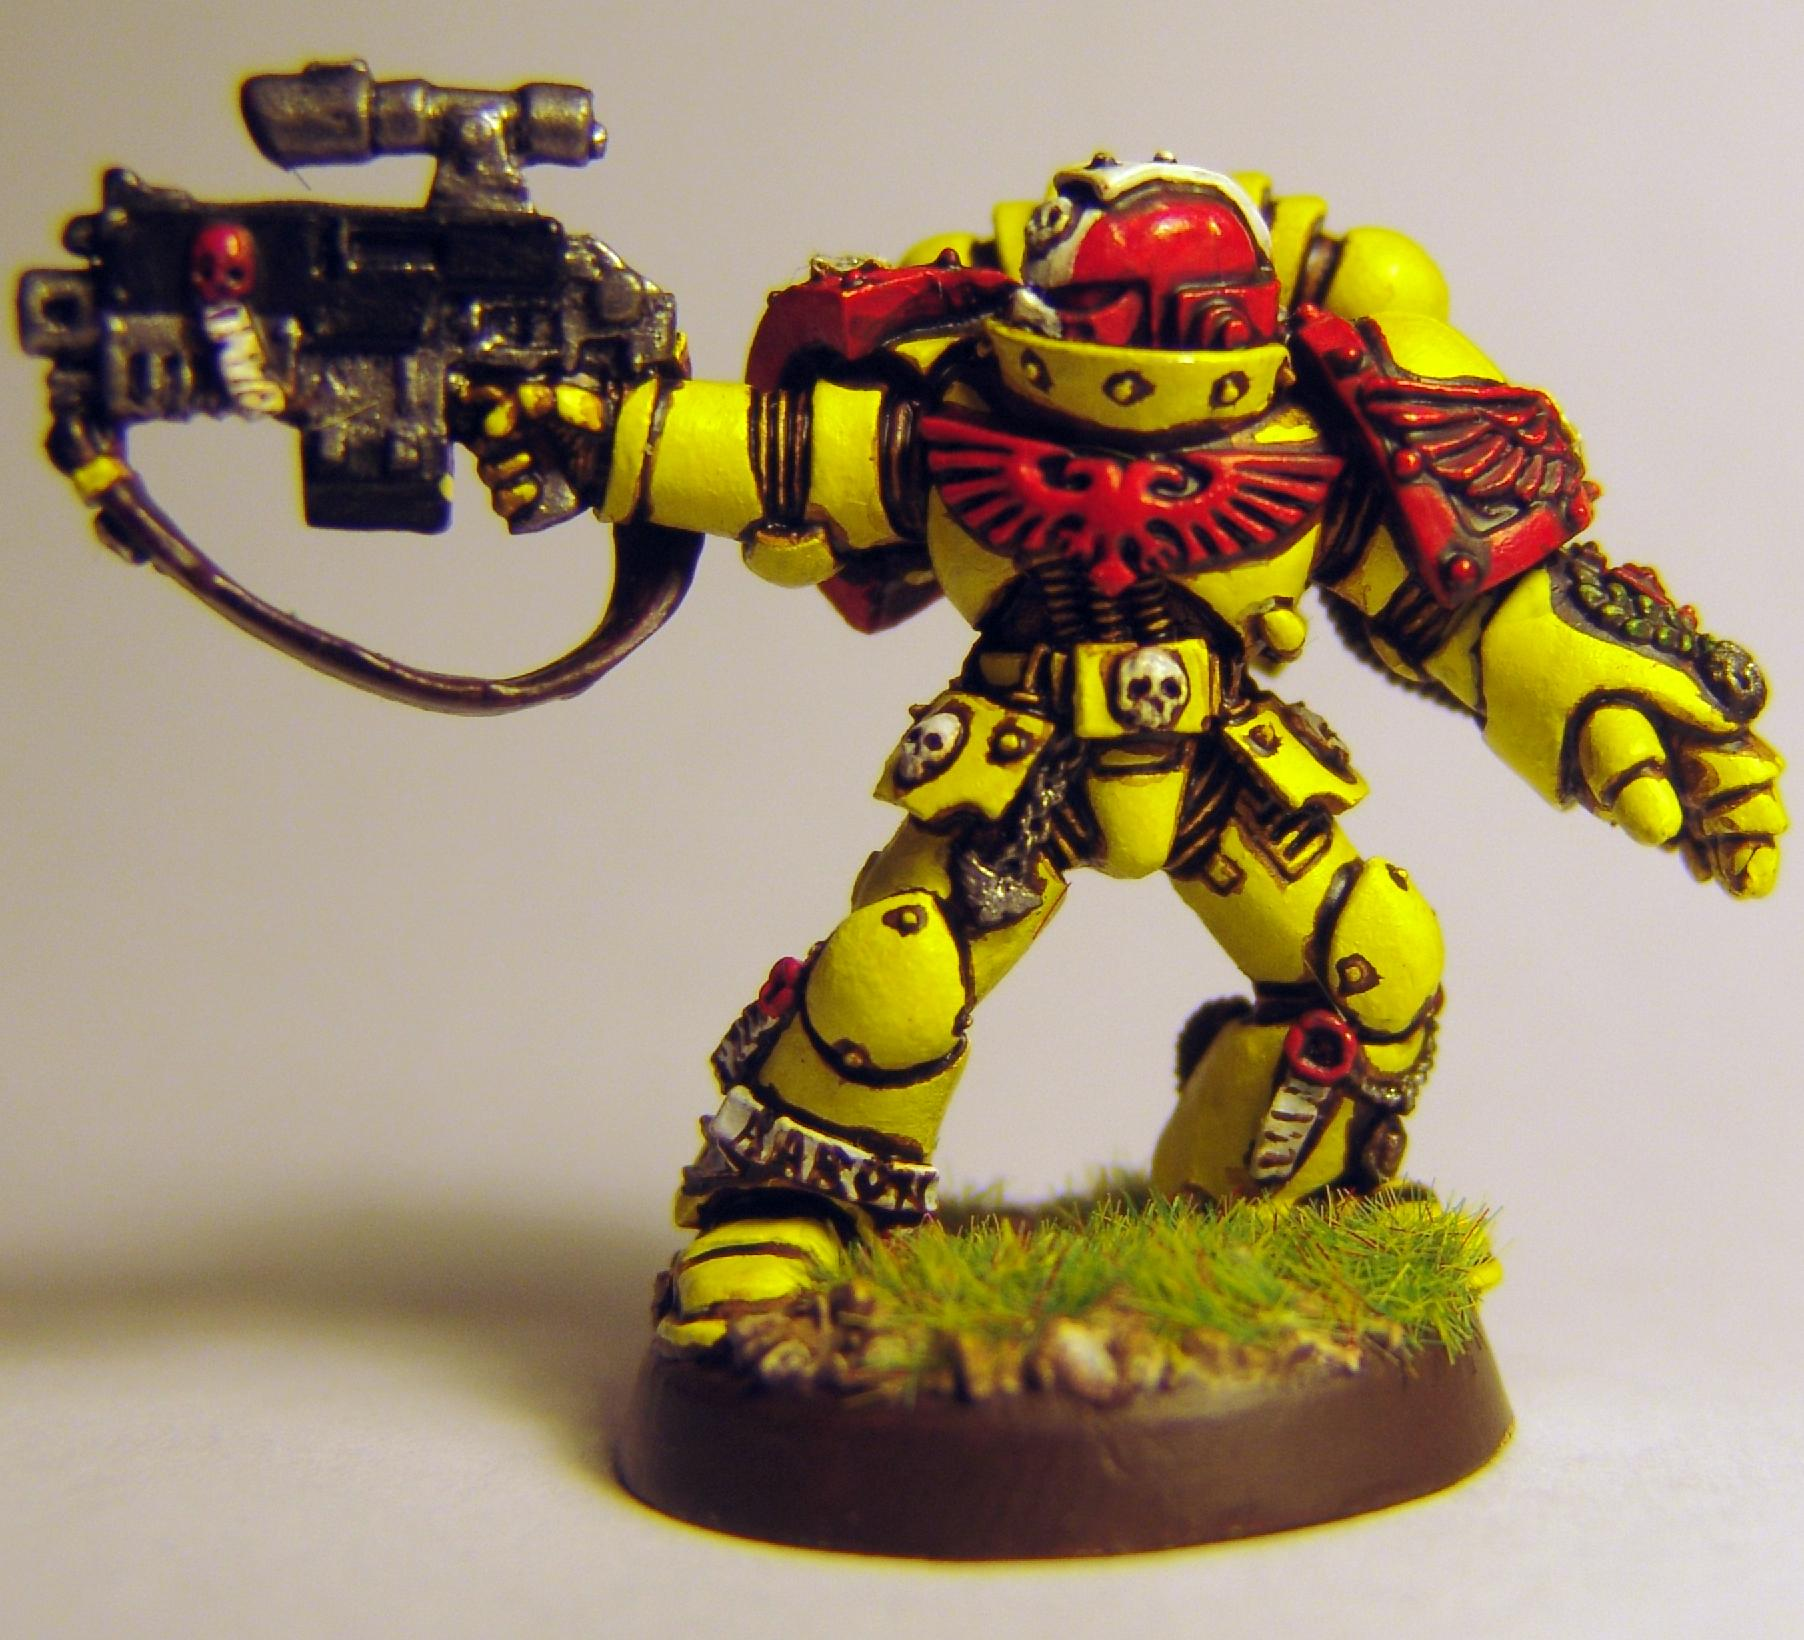 Imperial Fists, Power Fist, Sargeant, Space Marines, Sternguard, Warhammer 40,000